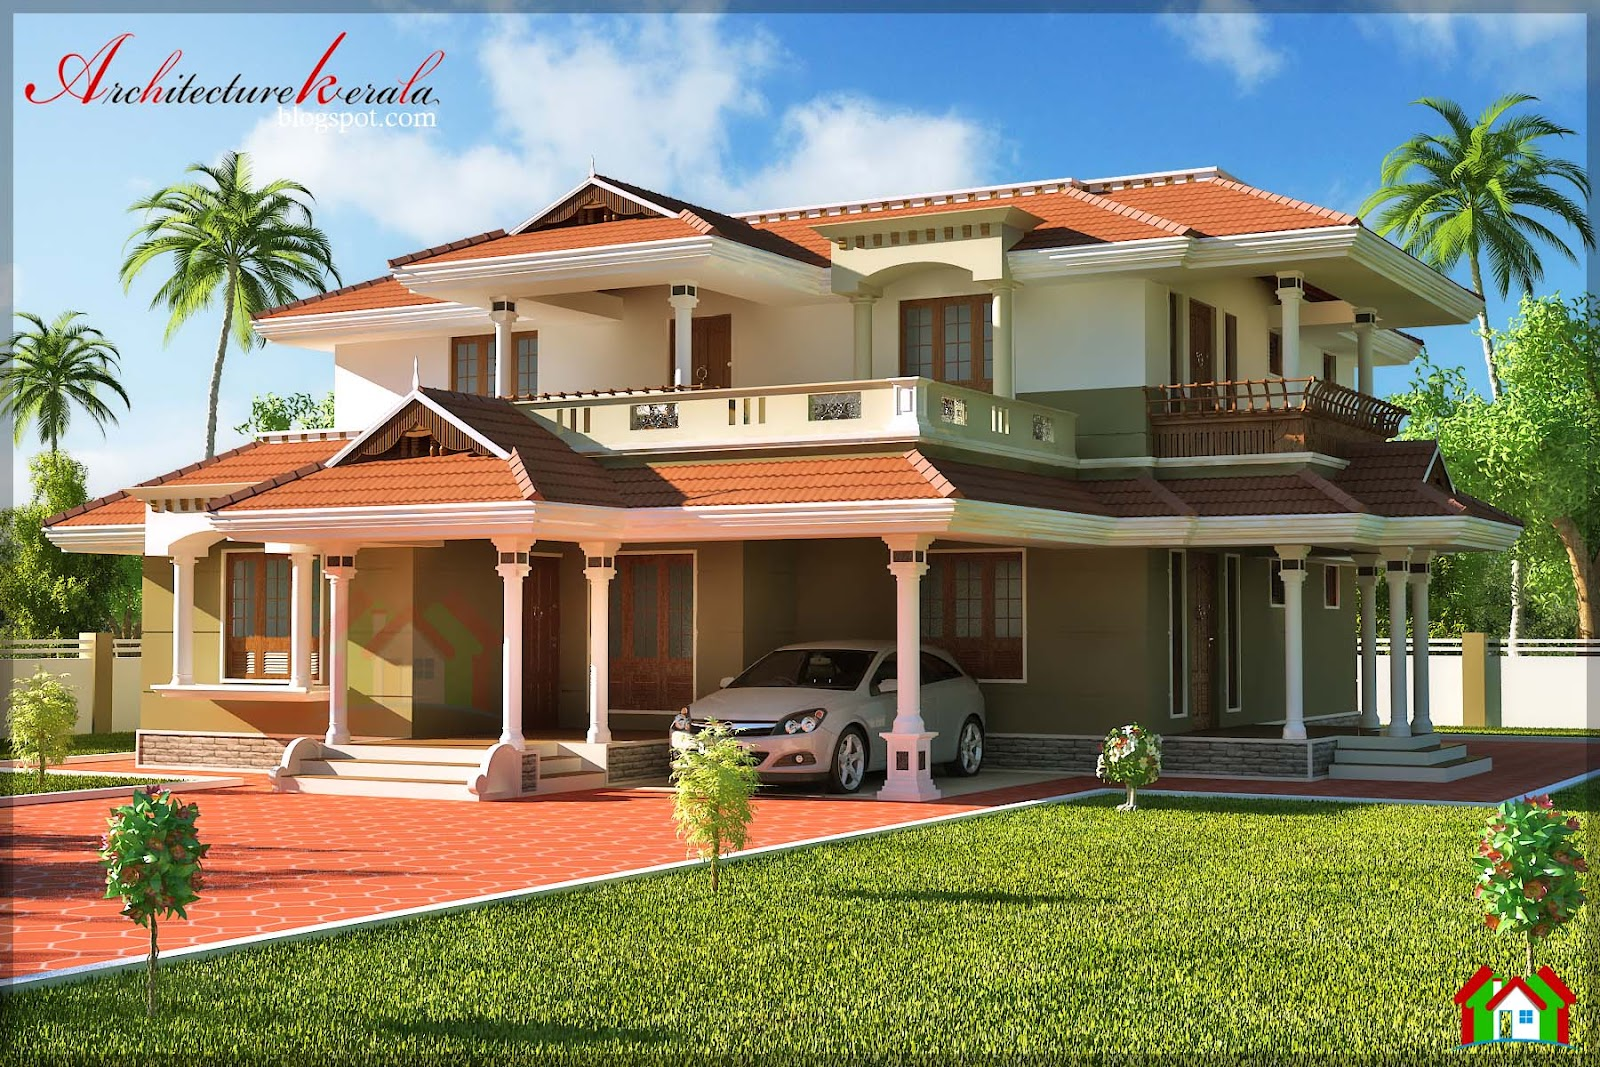 Bed room traditional style house design architecture kerala for Traditional house building